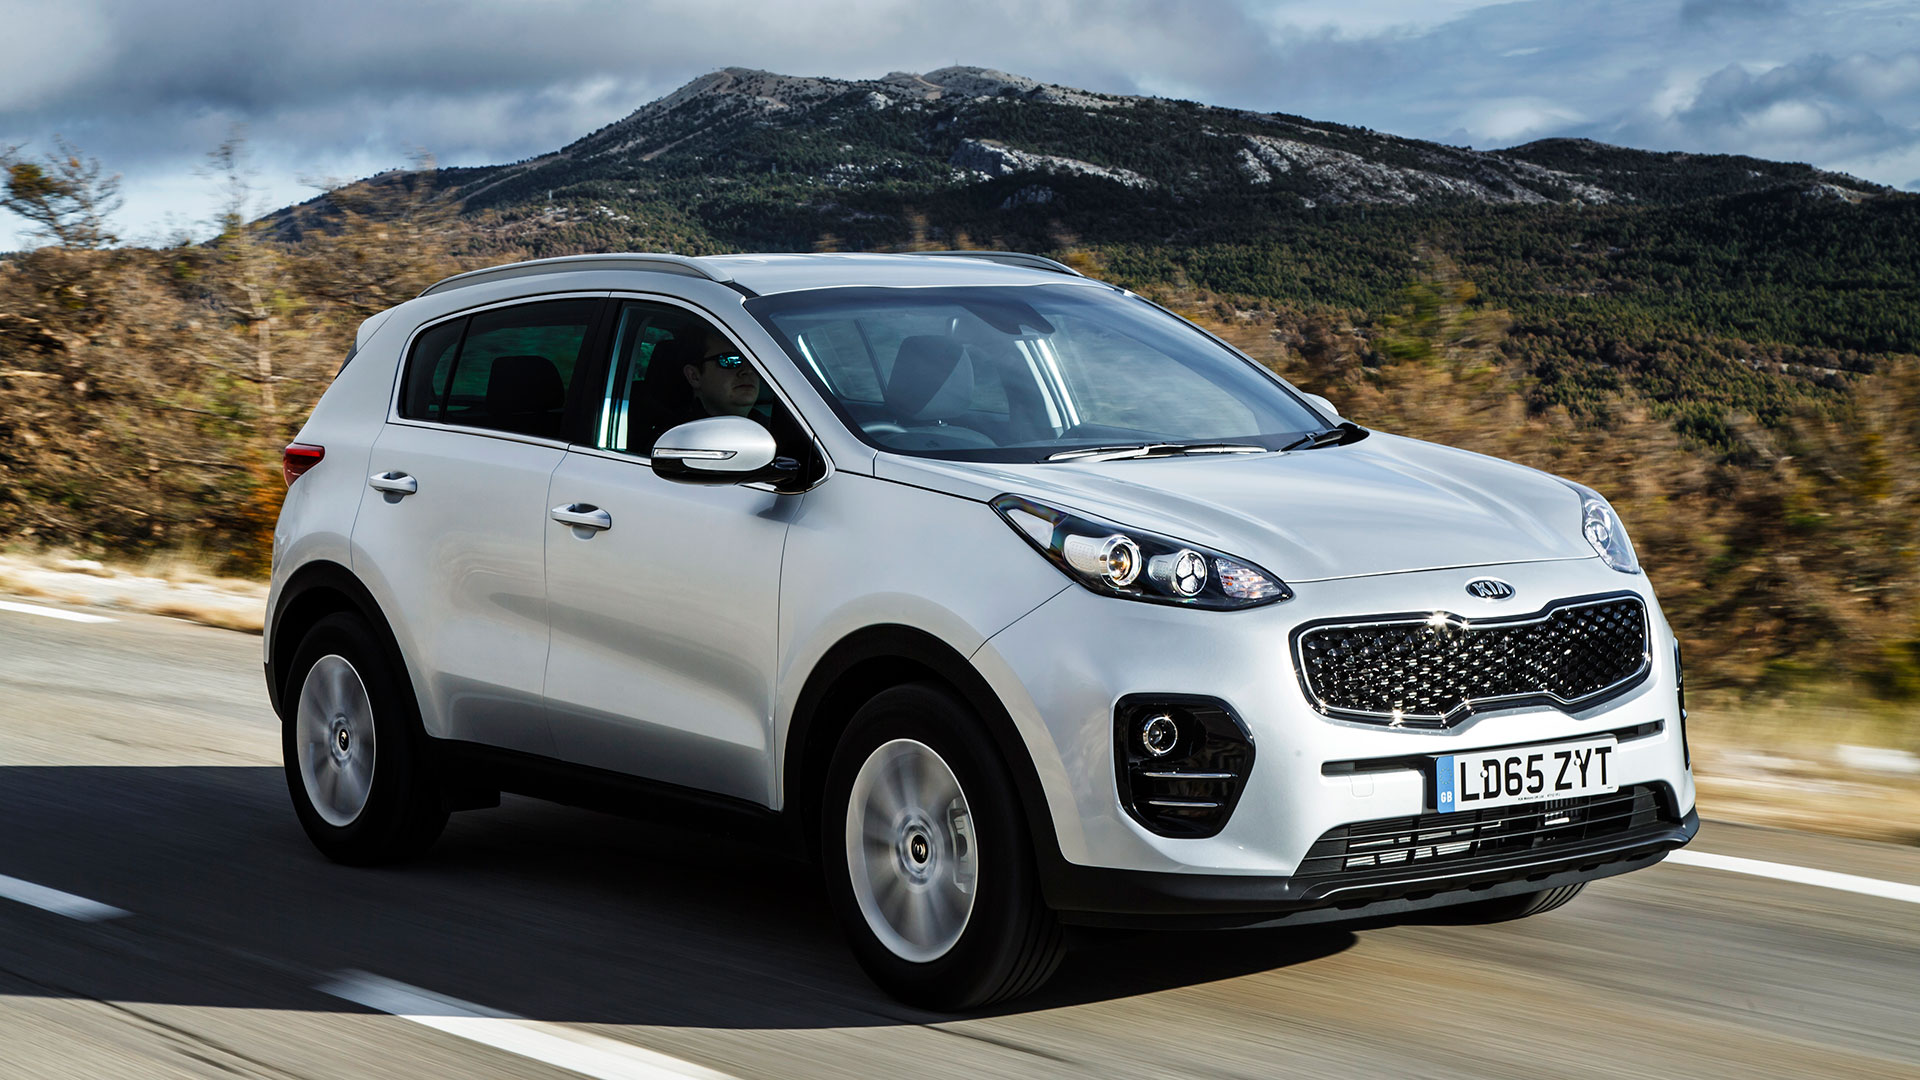 kia sportage suv 2016 review auto trader uk. Black Bedroom Furniture Sets. Home Design Ideas